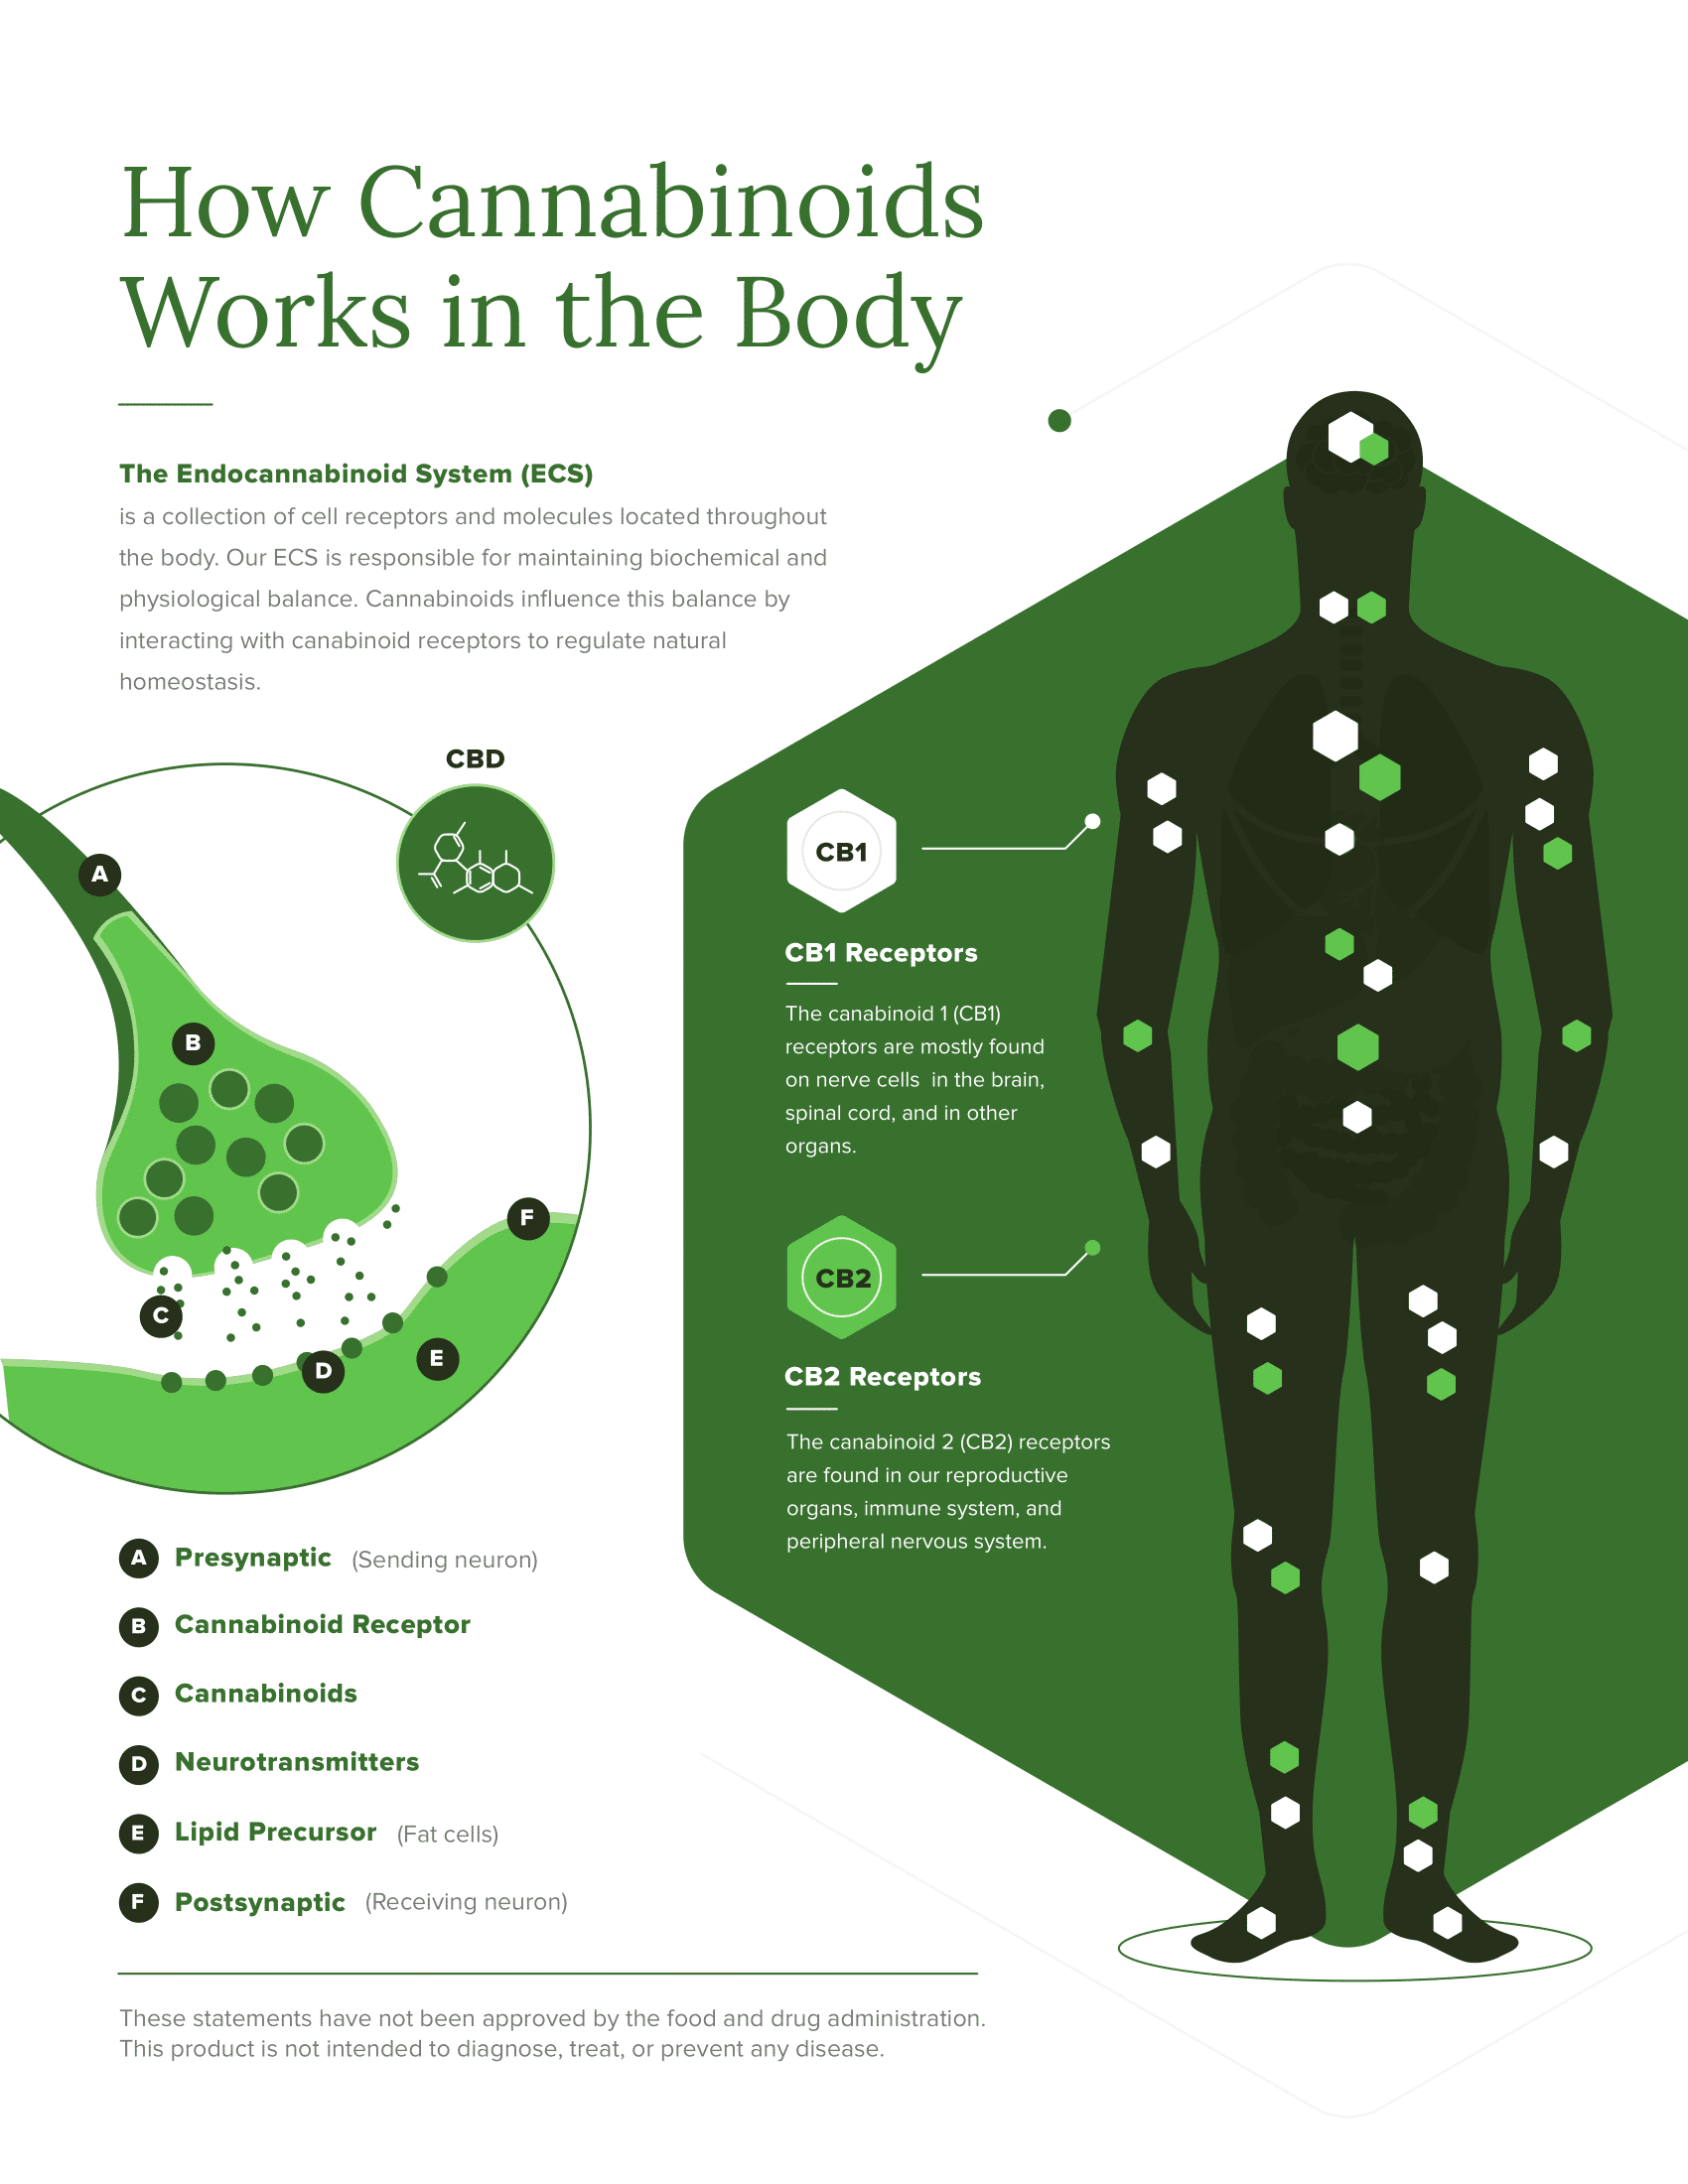 Infographic on how CBD works in the human body by interacting with numerous receptors including our Endocannabinoid System